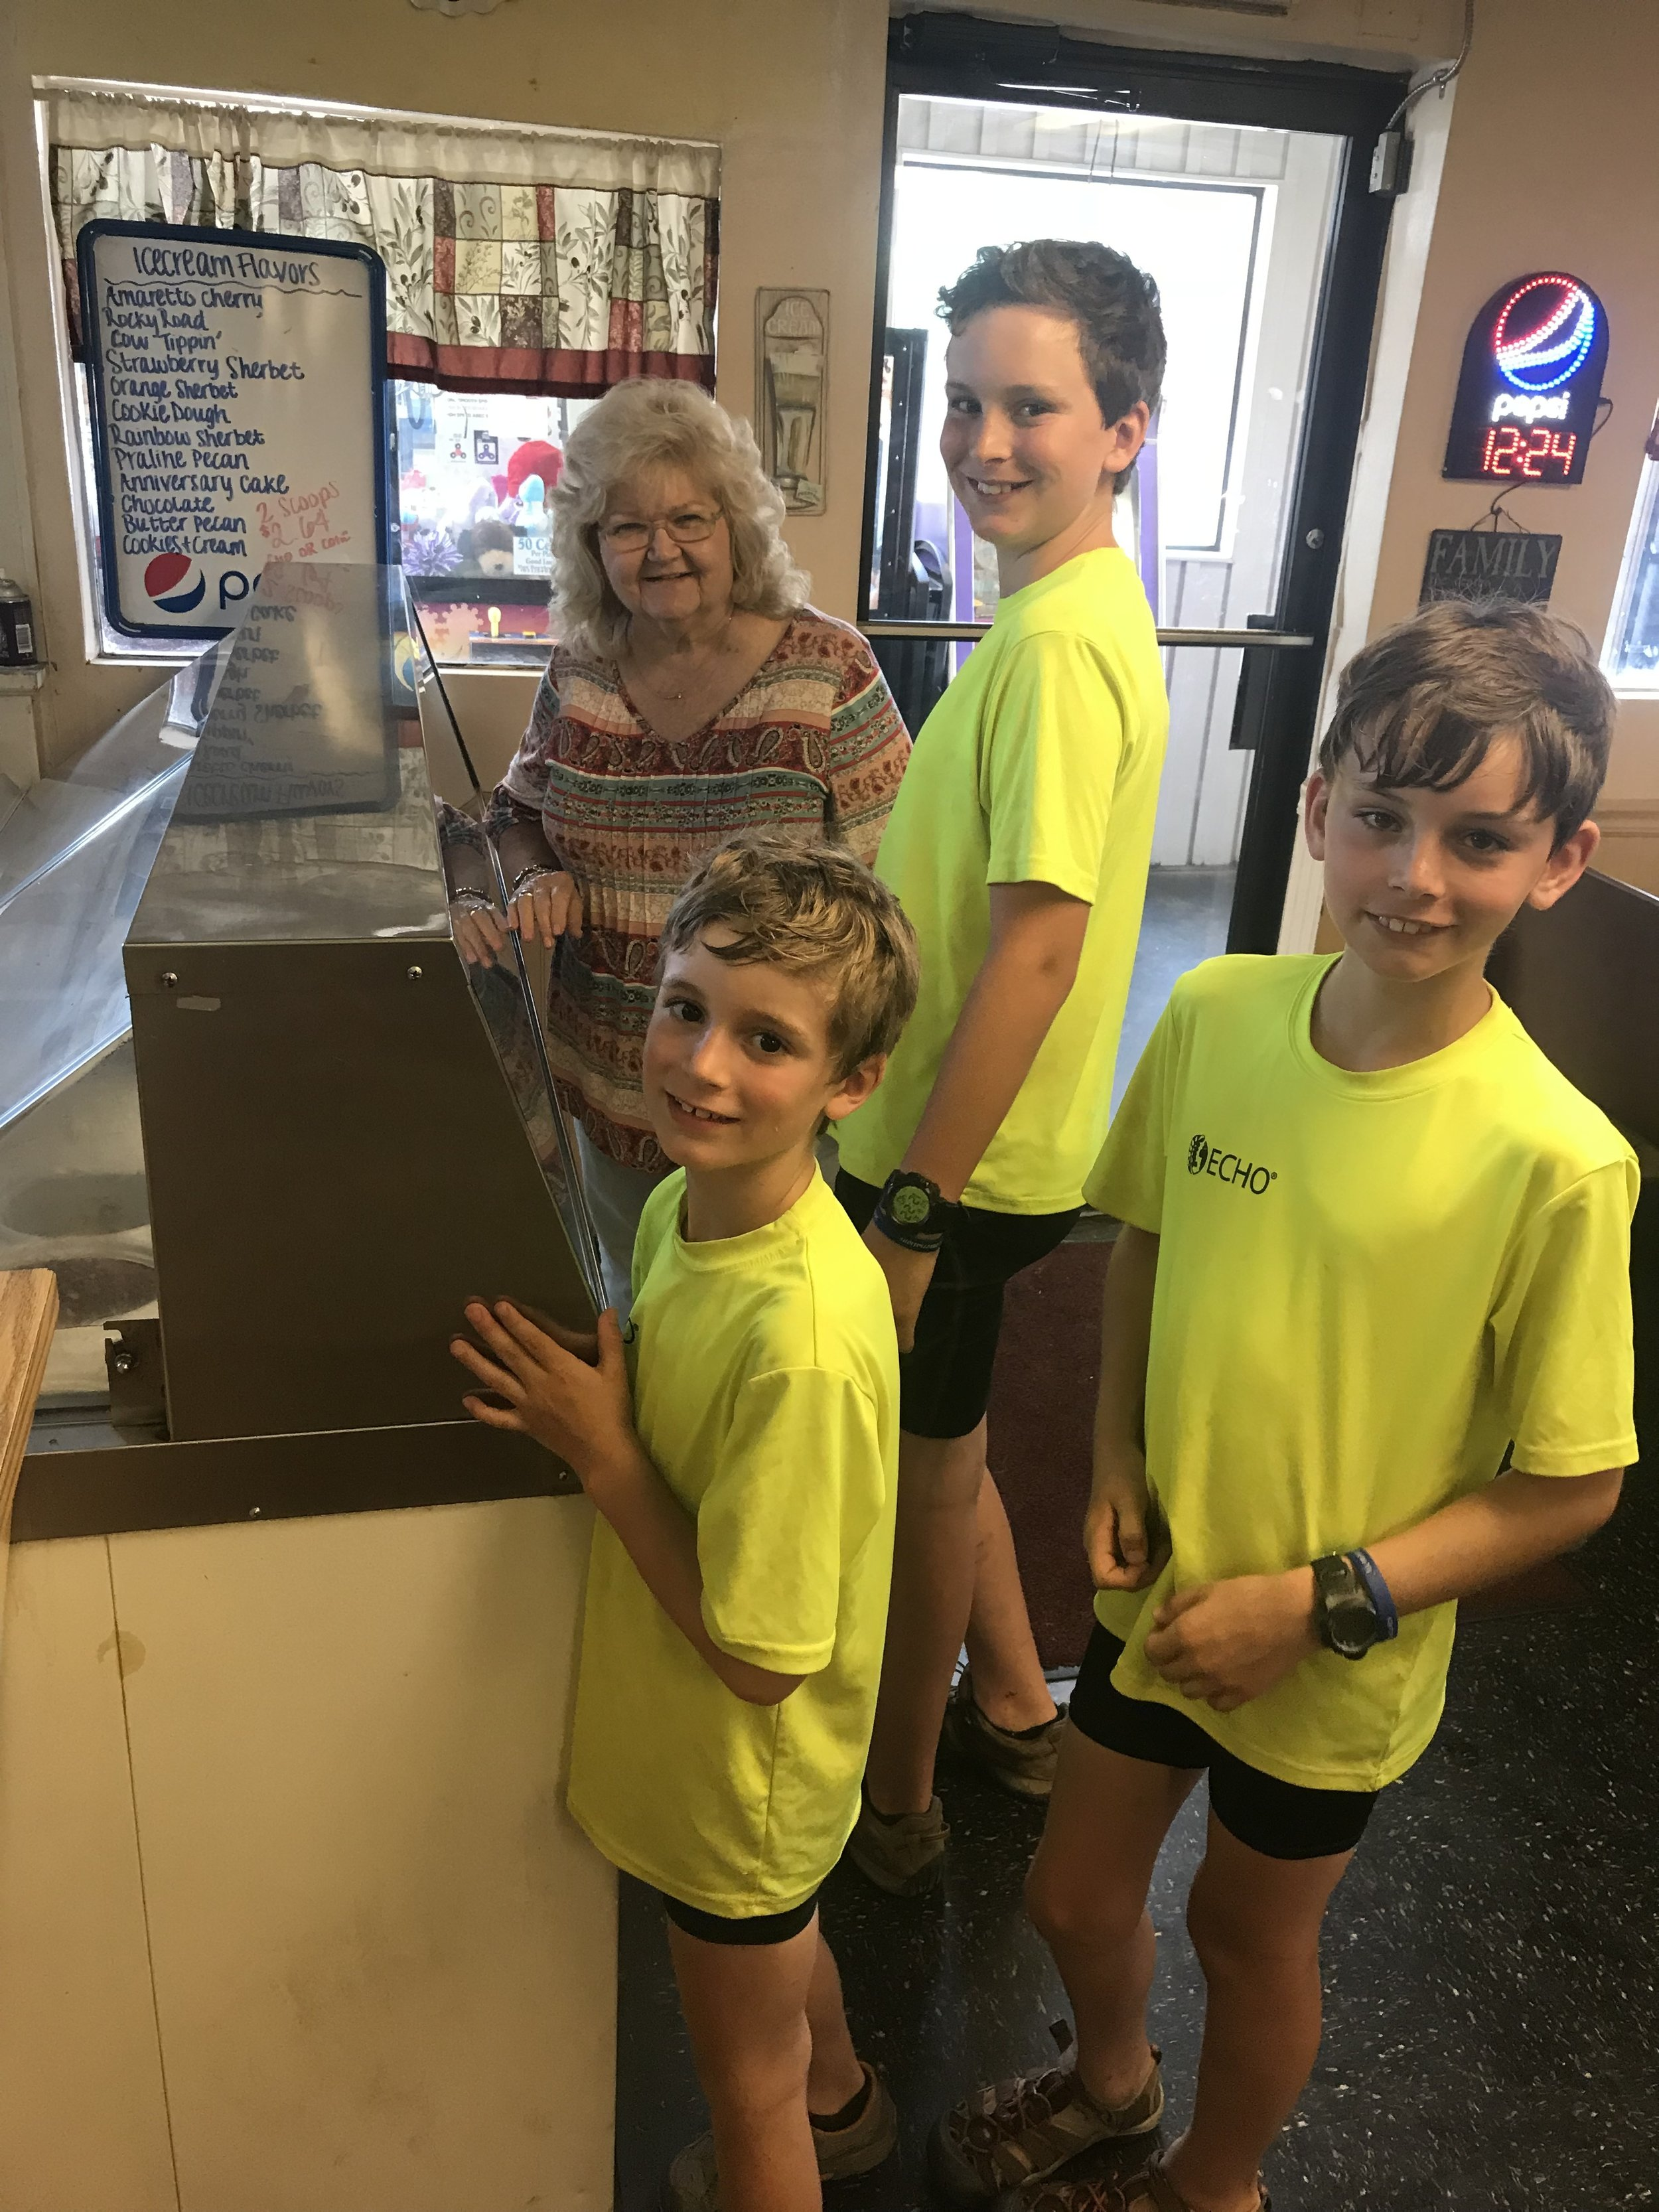 At a little restaurant in Sebree, KY, we struck up a conversation with a sweet couple, and the woman treated the boys to ice cream! More kindness!